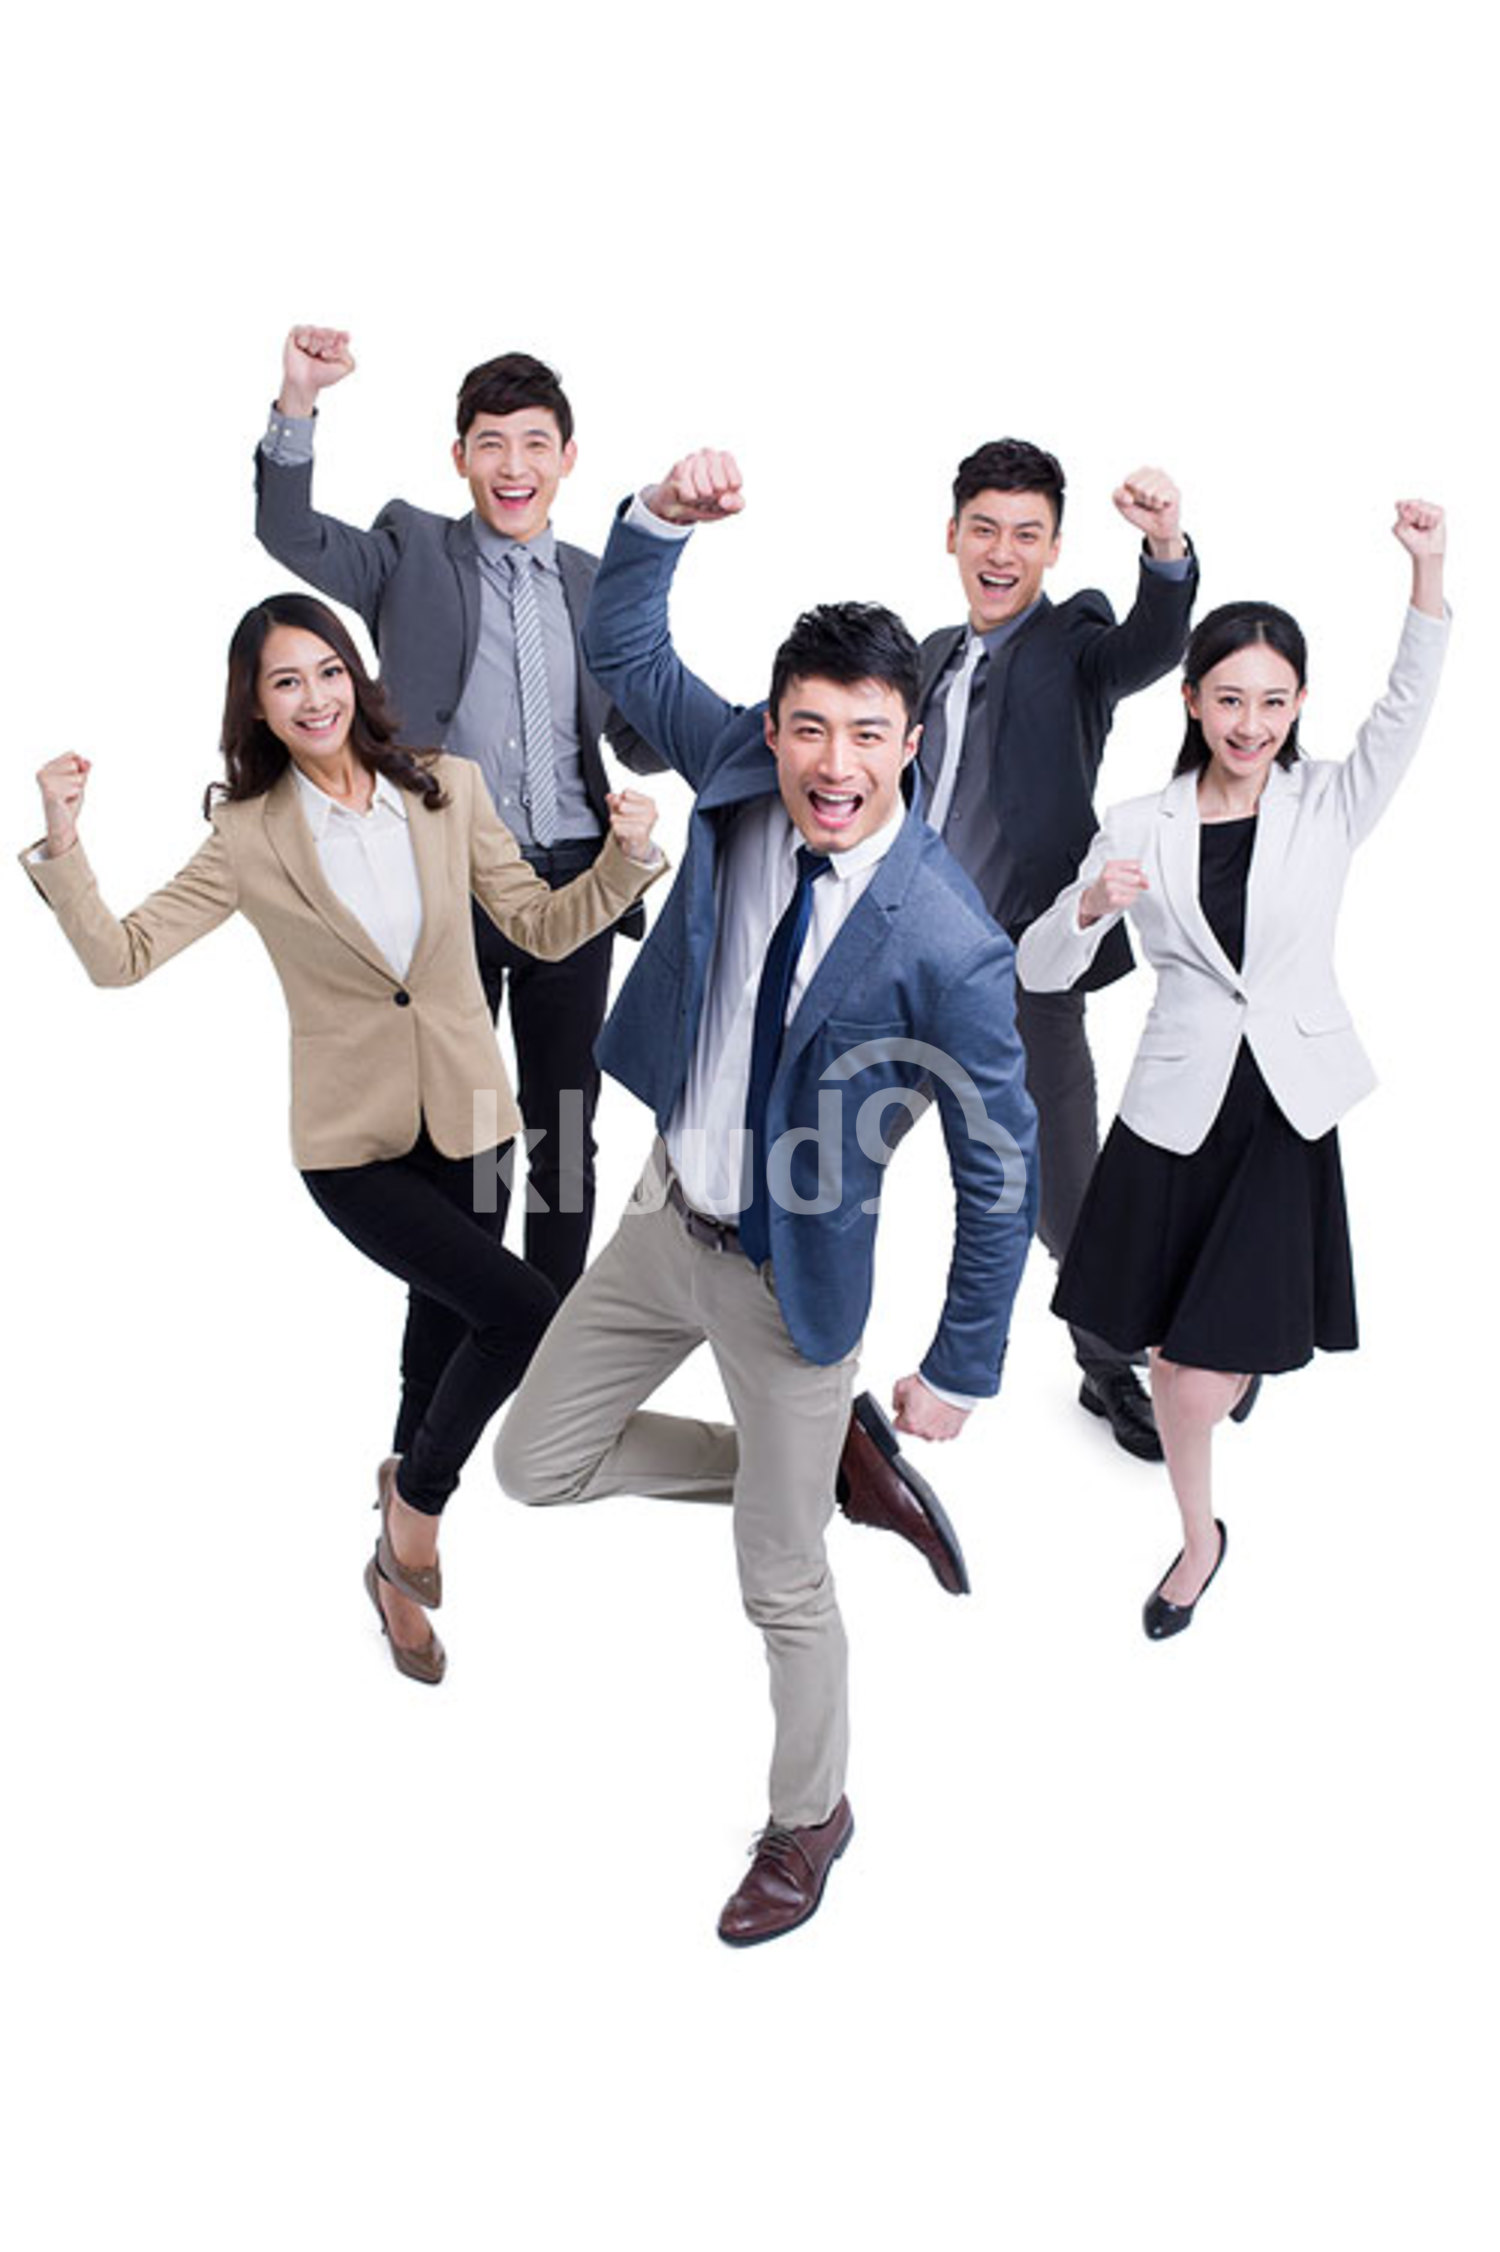 Excited Chinese business coworkers punching the air